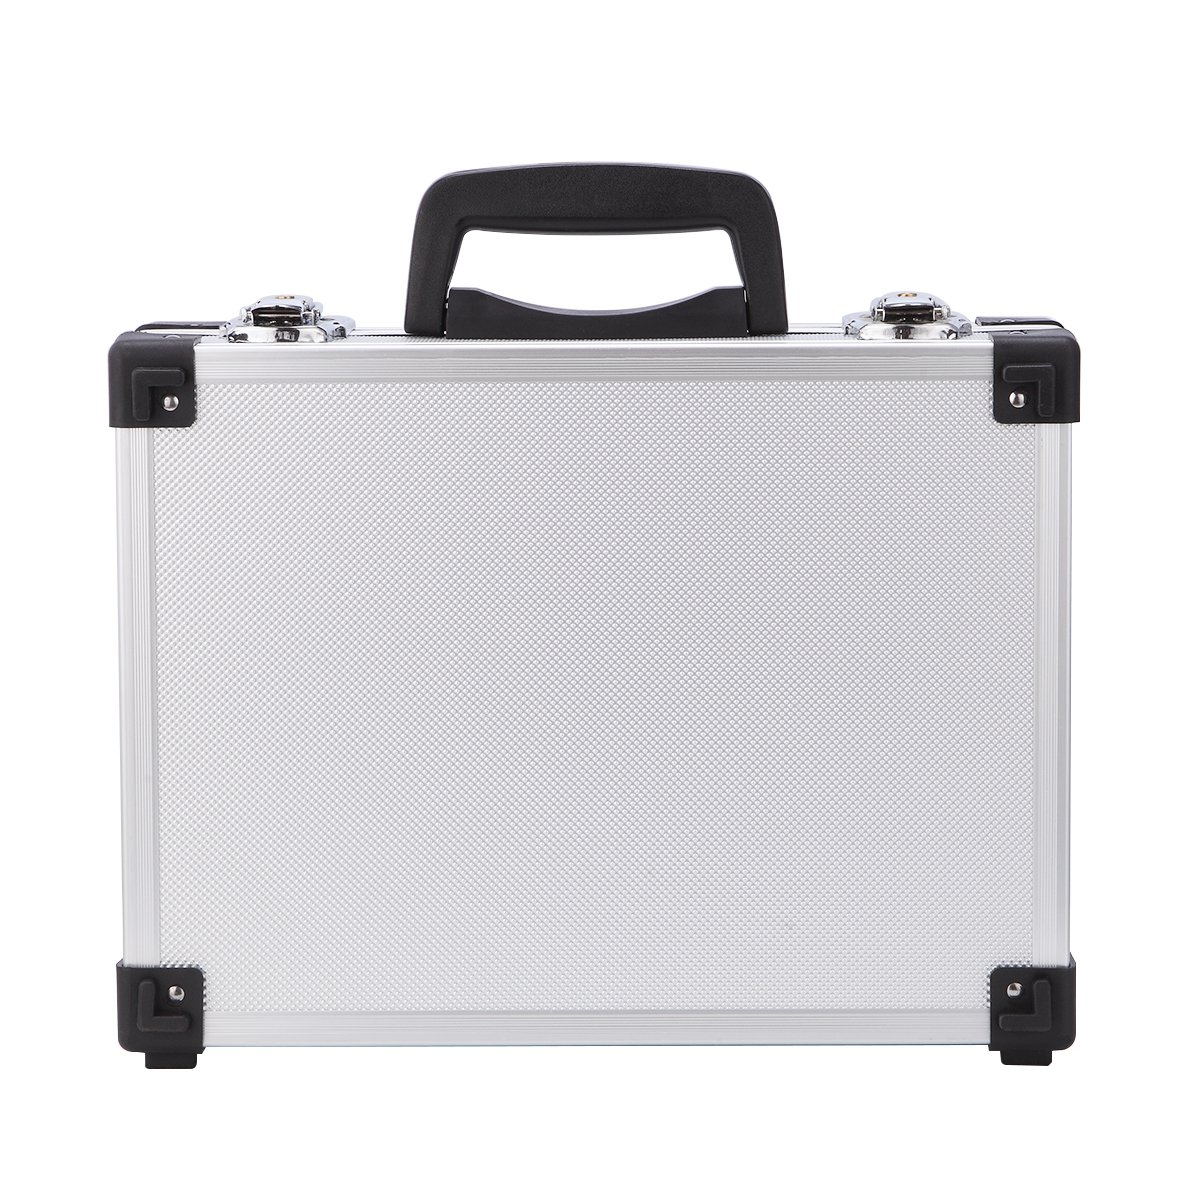 Professional Aluminum Hard Hand Gun Cases Office File Briefcase Outdoor Travel Flight Cases Home Tool Boxes with Quick Locks by ALUBOX (Image #4)